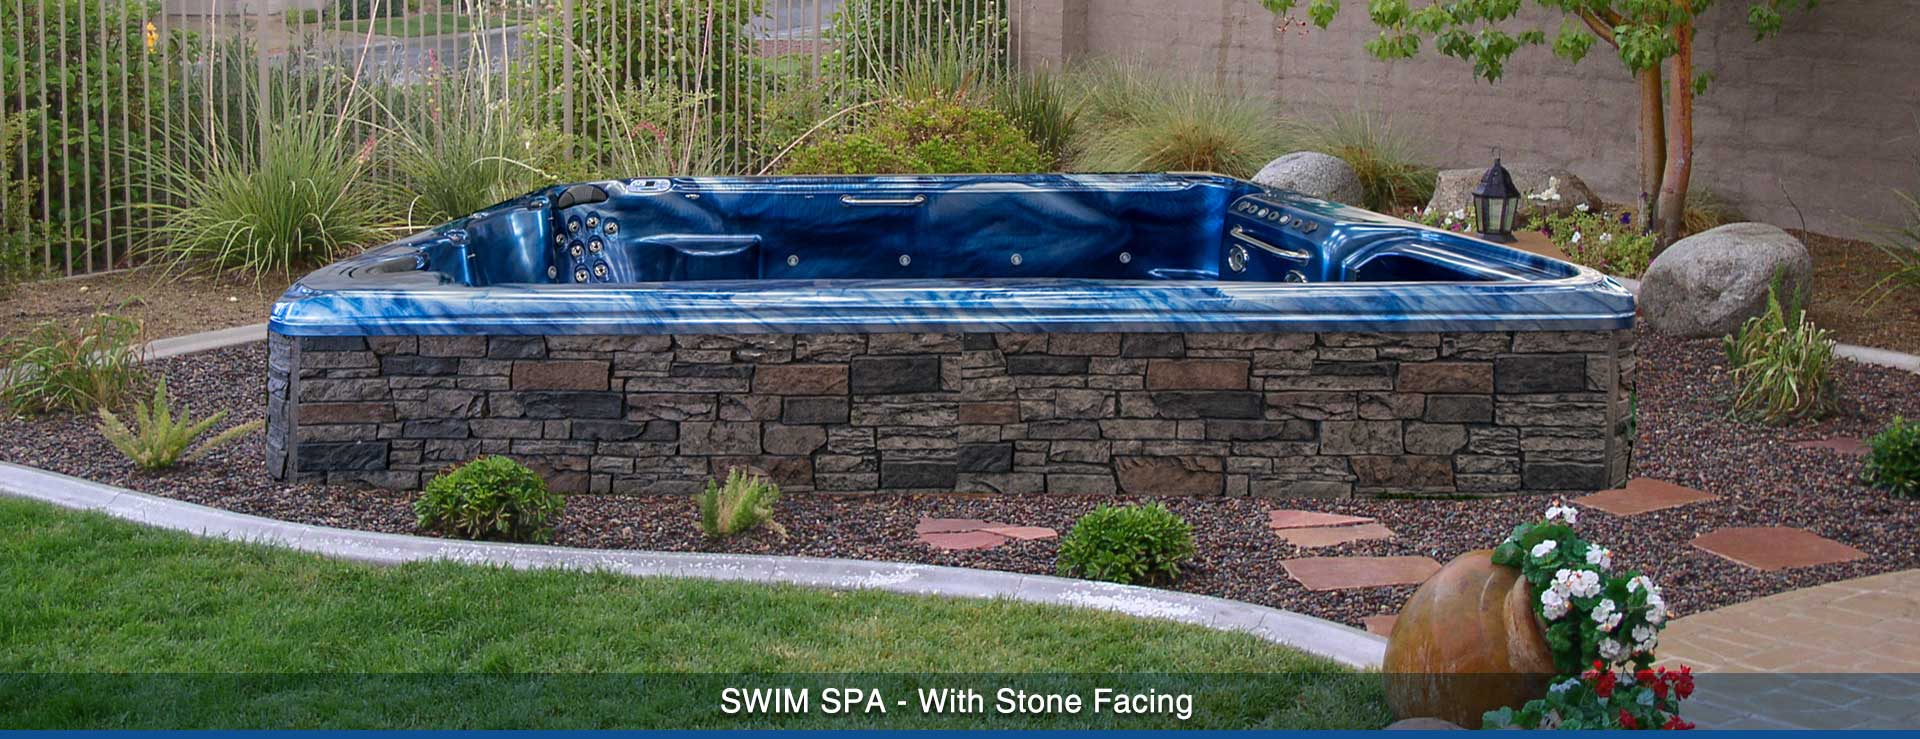 Spa Tubs For Small Spaces 8 Ways To Place Your Original Outdoor Jacuzzi Spas Pools In Gardens